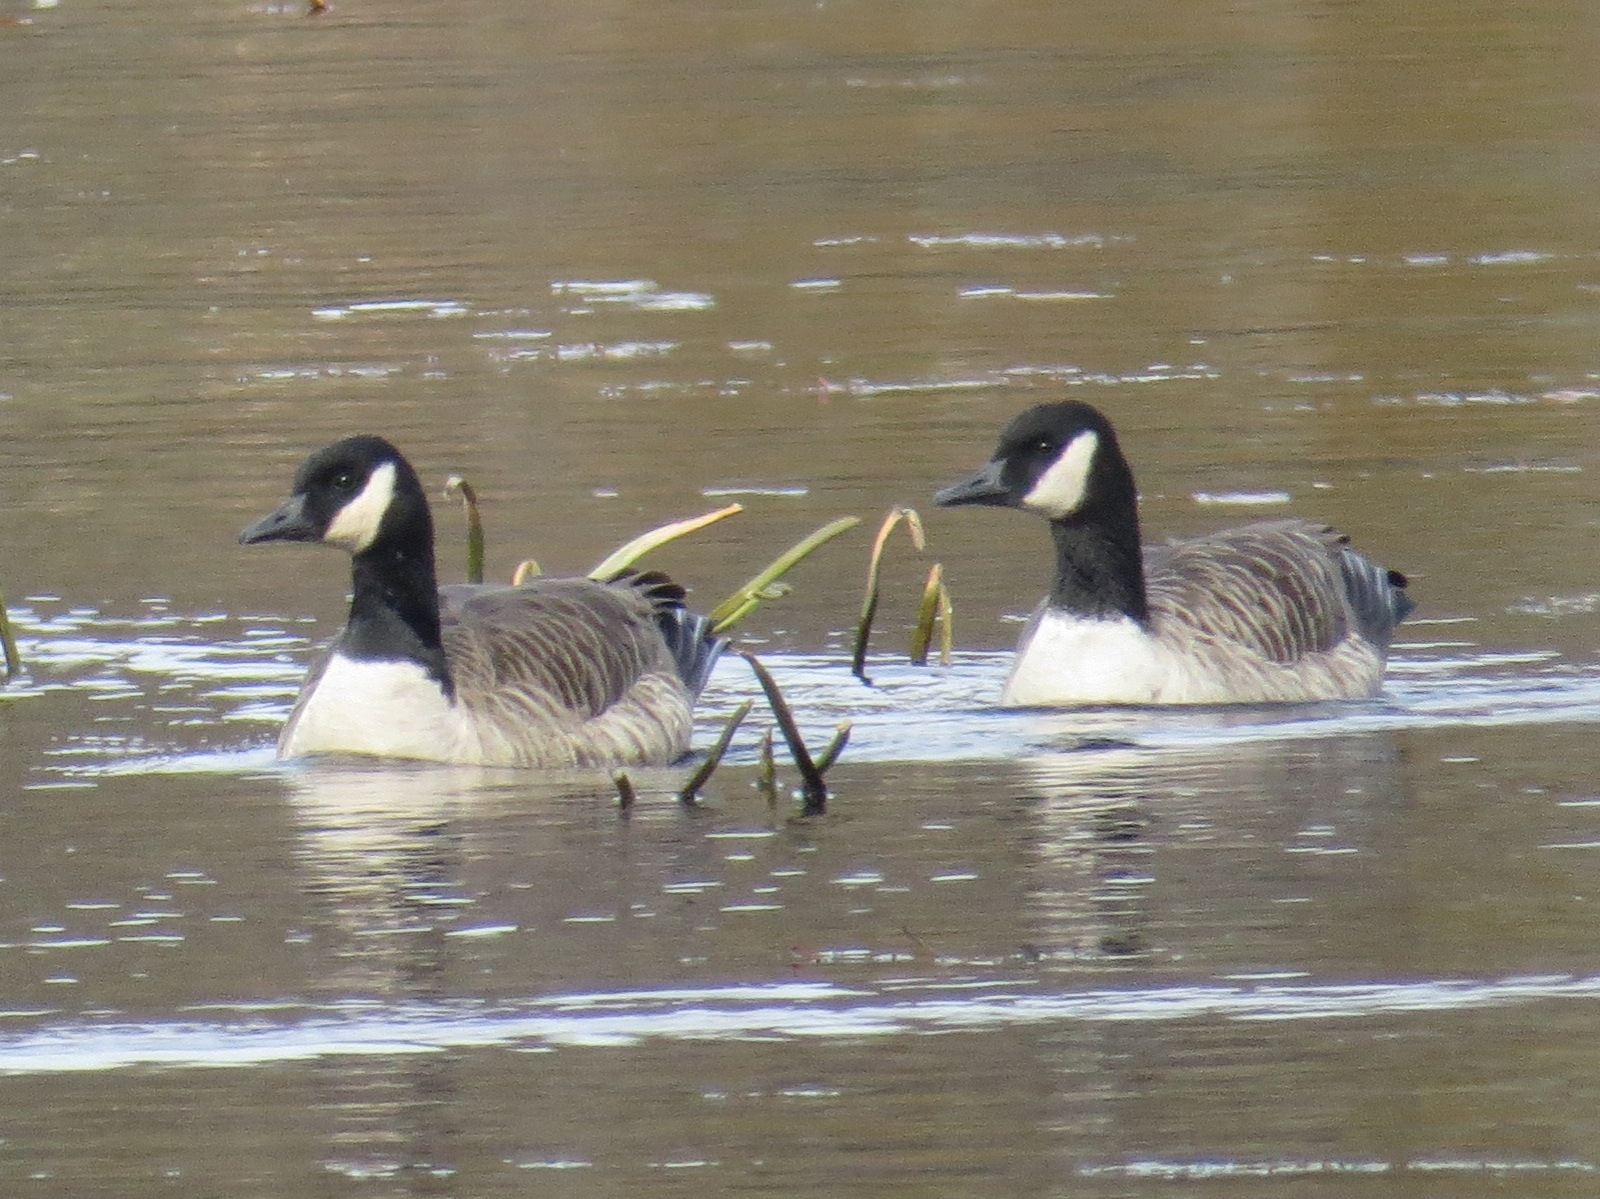 Two Cackling-ish Geese. Concord, MA, 5 Nov 2014.